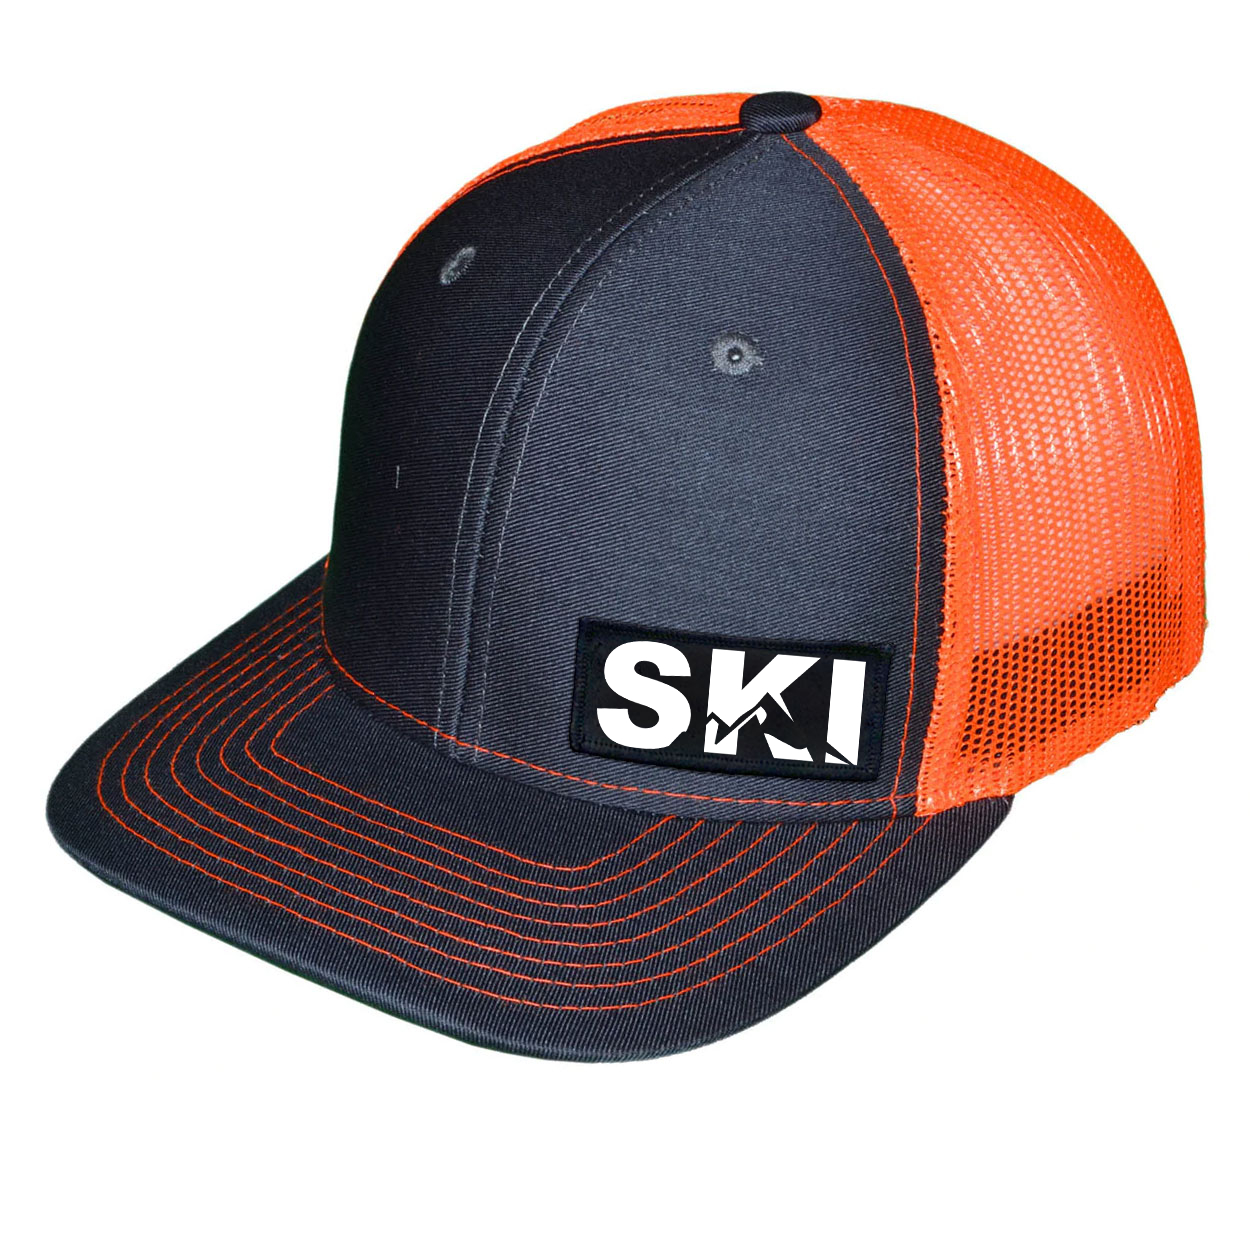 Ski Mountain Logo Night Out Woven Patch Snapback Trucker Hat Dark Gray/Orange (White Logo)